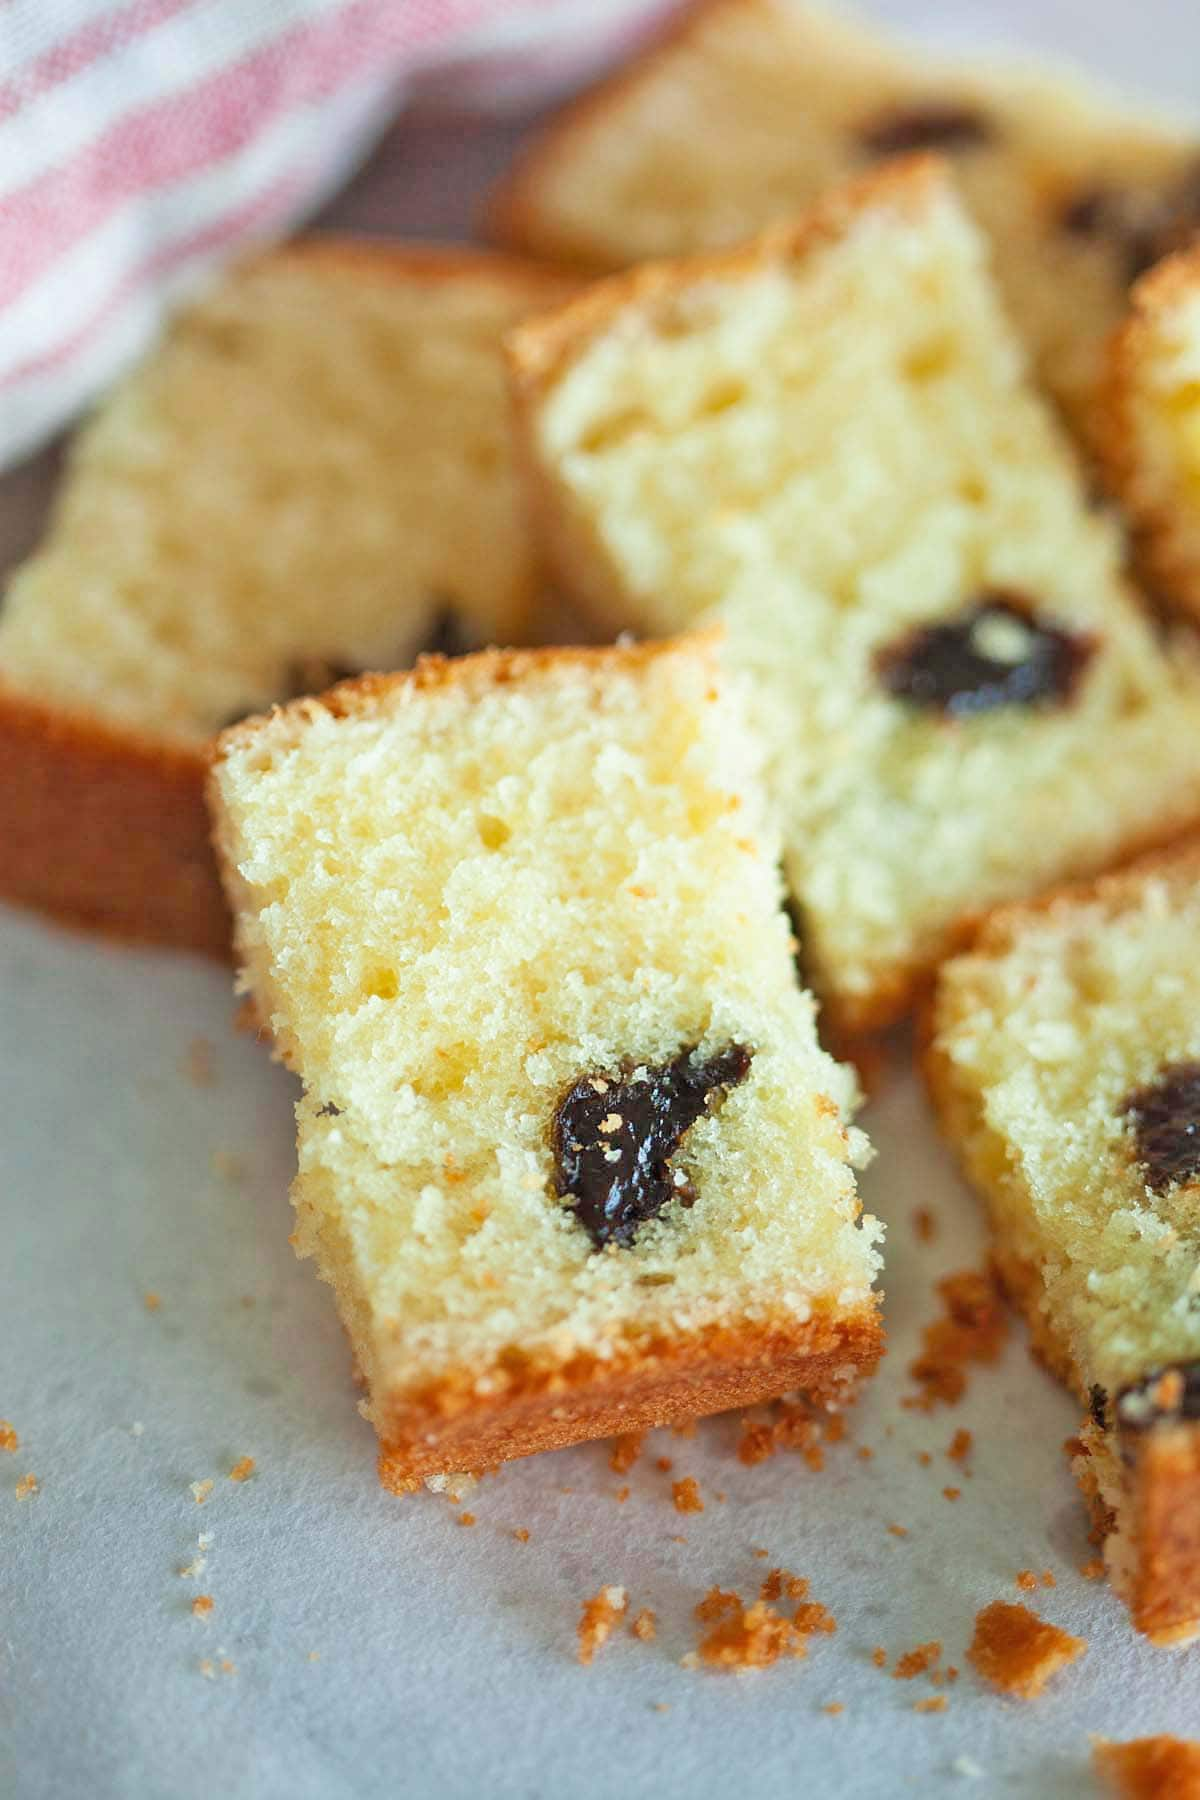 Brandy butter cake with prunes, ready to serve.